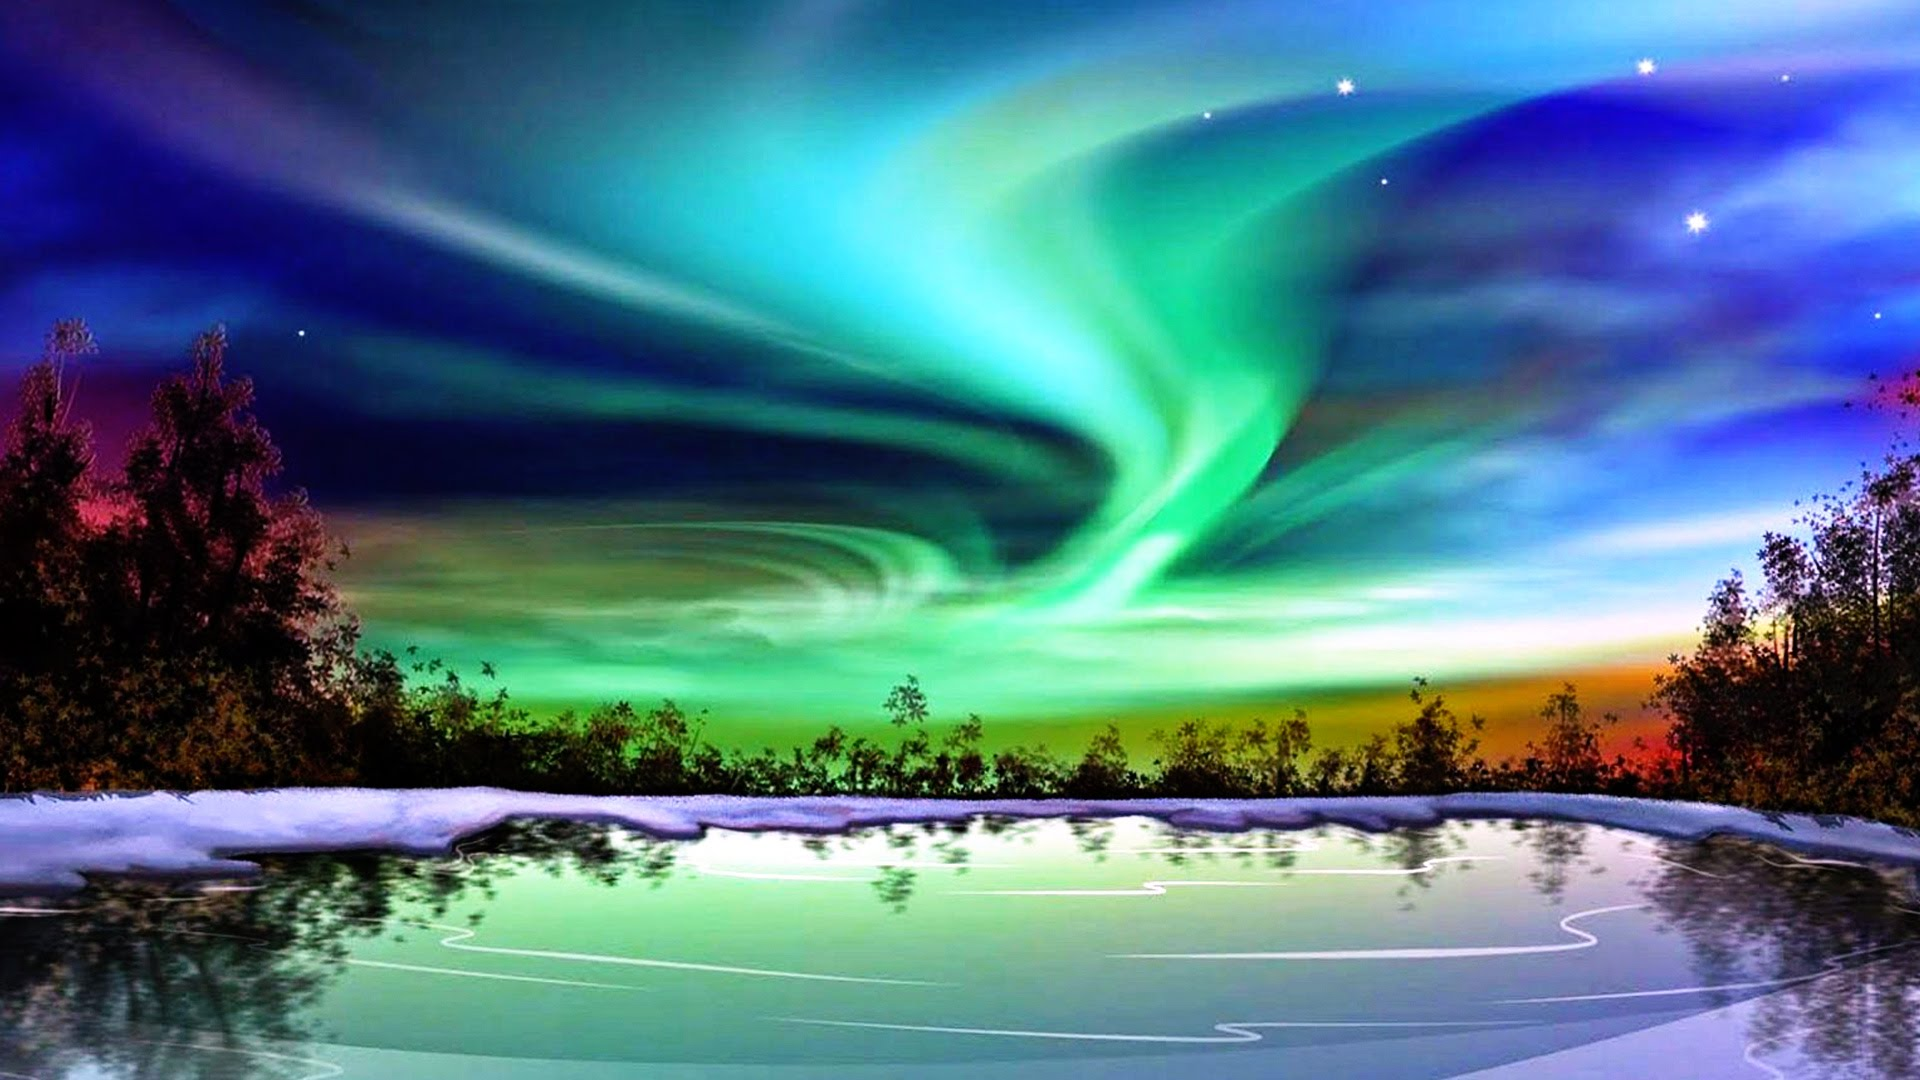 Why are we Seeing Northern Lights? - Absolute Knowledge